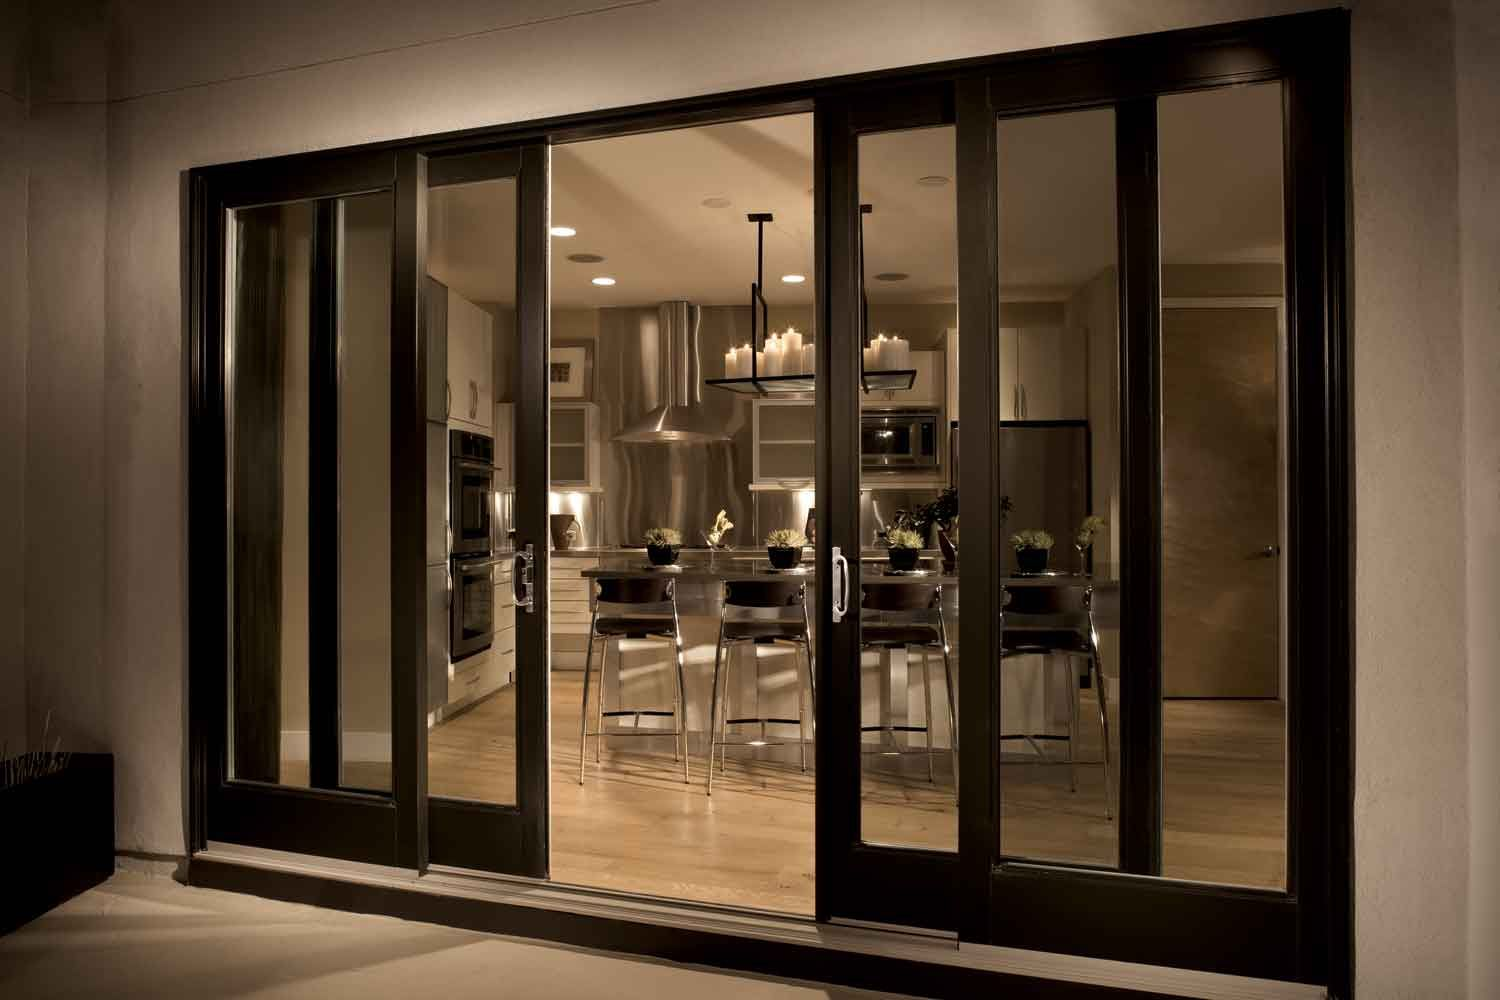 Exterior Double Glass Patio Doors | Patio Doors Are Doors That Connect The  Door To The